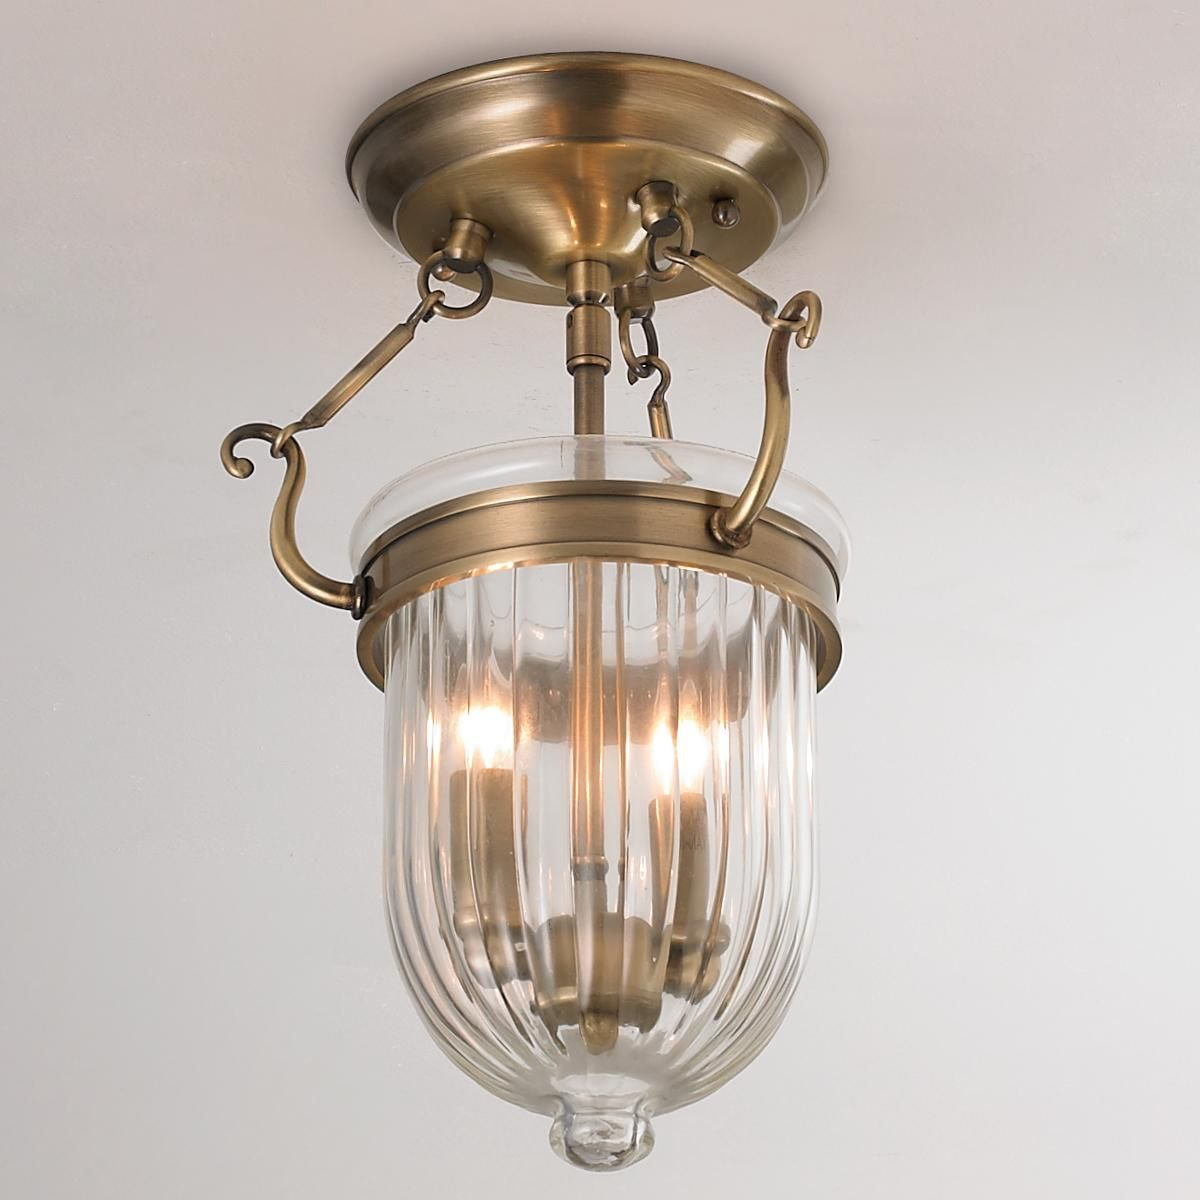 Colonial Classic Ceiling Light Ceiling Lights Star Lights On Ceiling Classic Ceiling